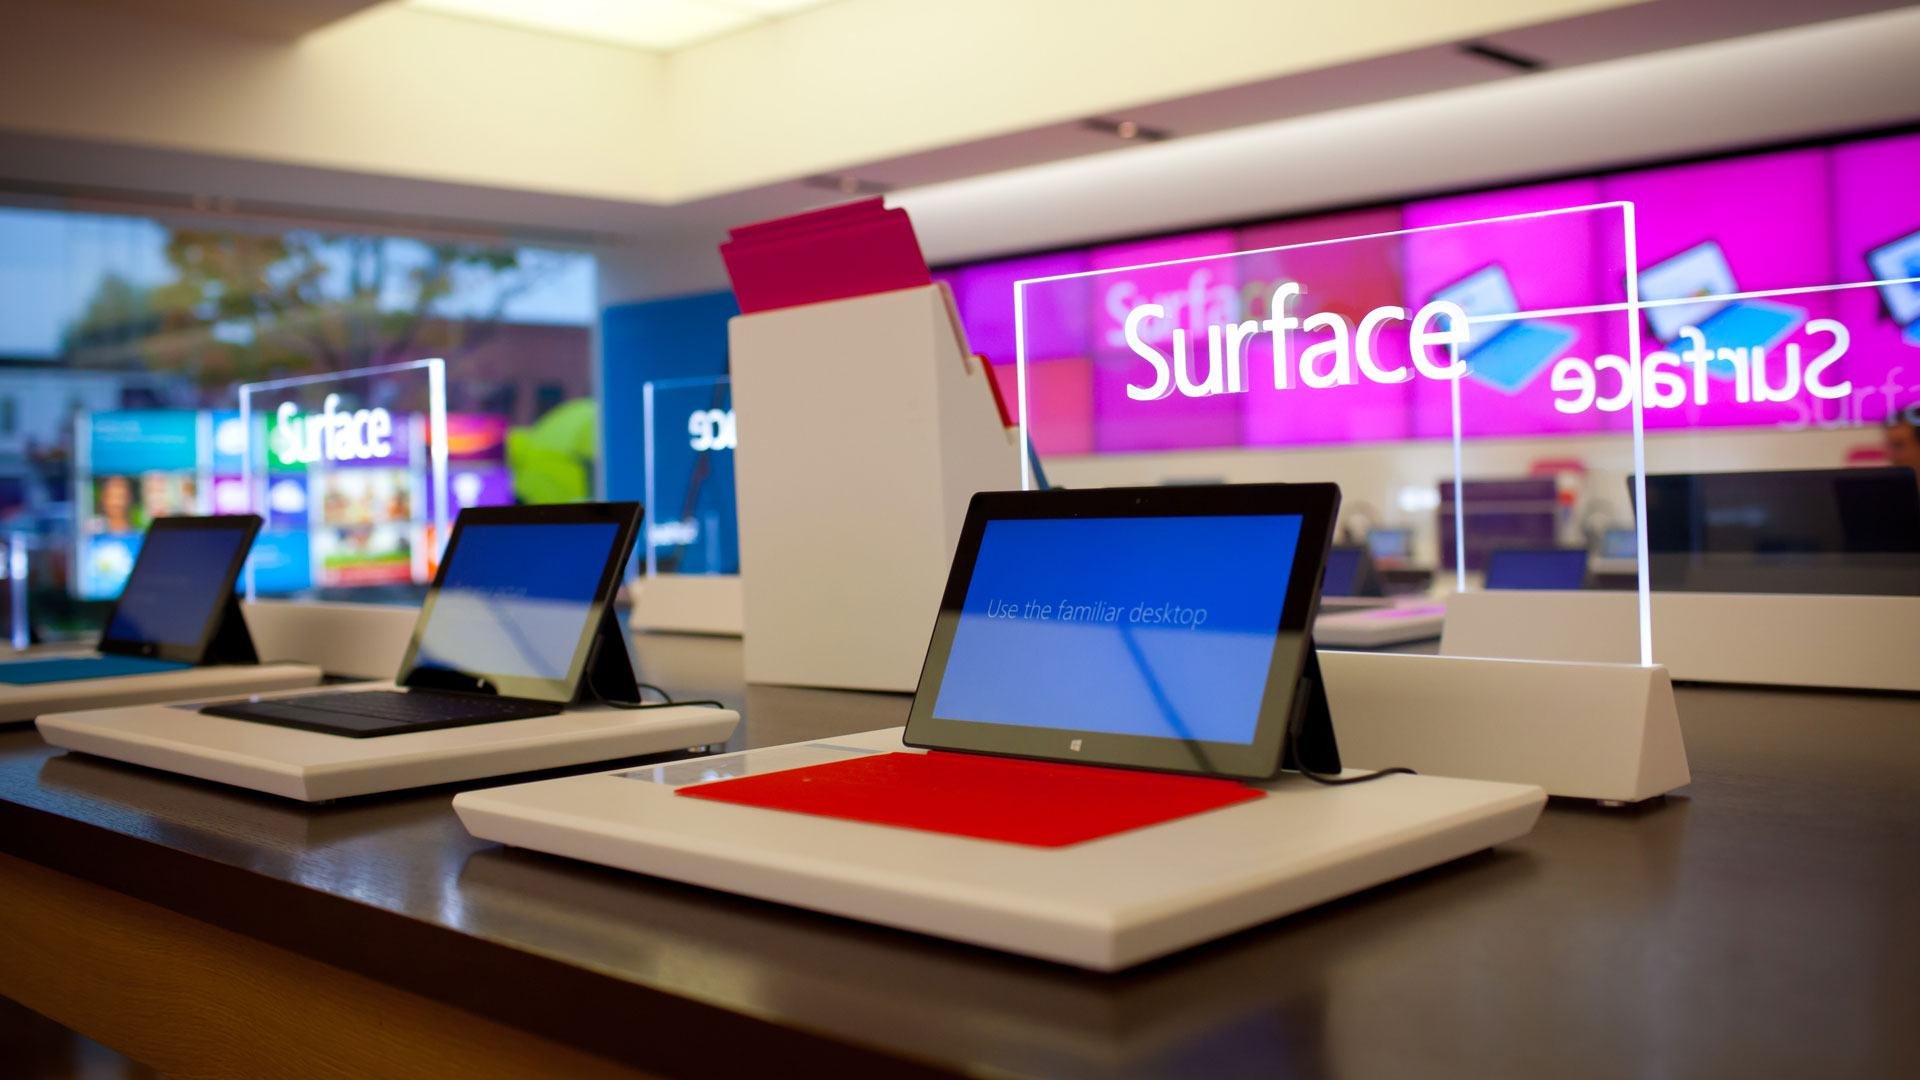 Surface tablet currently Wallpapers - Download free Microsoft Surface ...